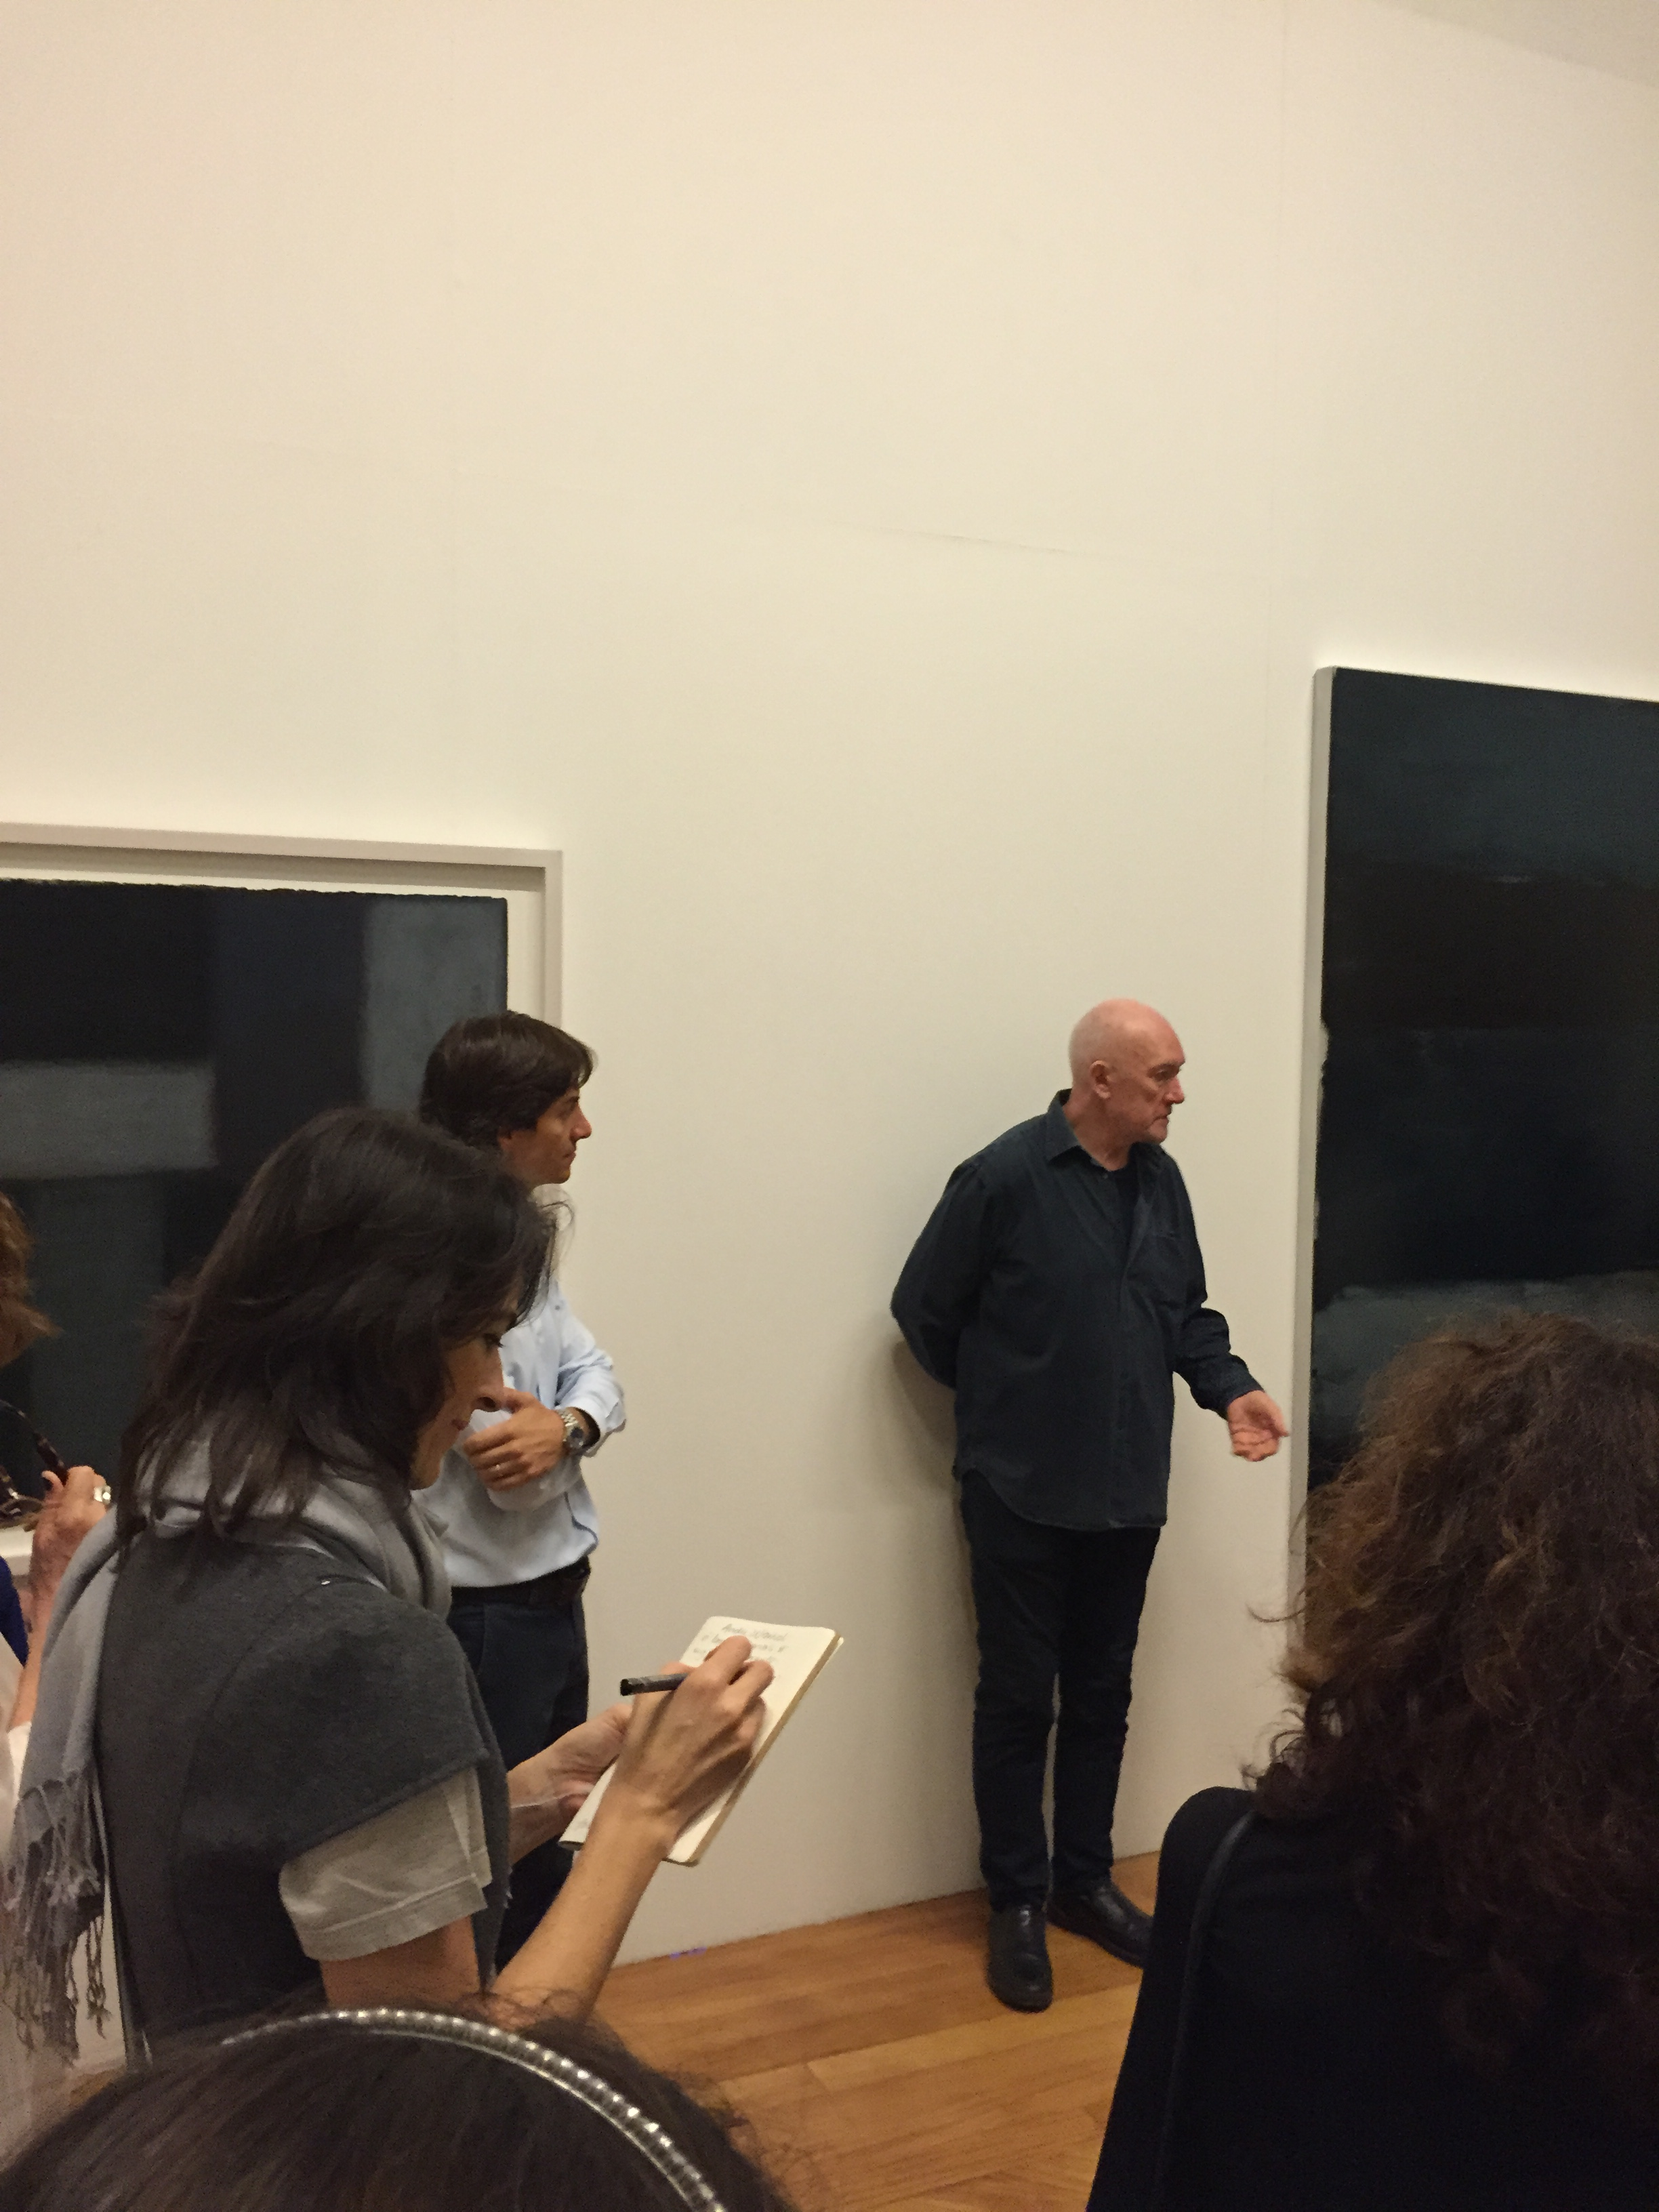 Interested in Scean Scully's tips during his visit to Pinacoteca do Estado de São